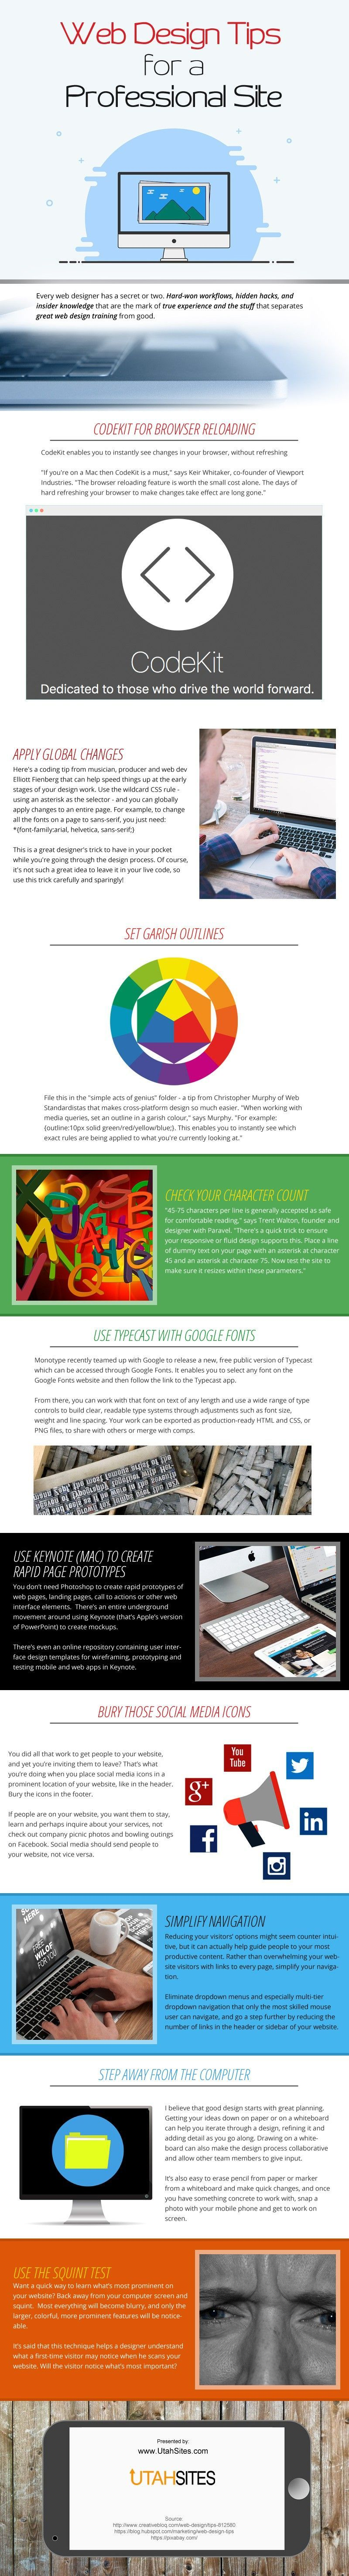 Web Design Tips For A Professional Site Infographic Web Design Tips Web Design Tools Web Design